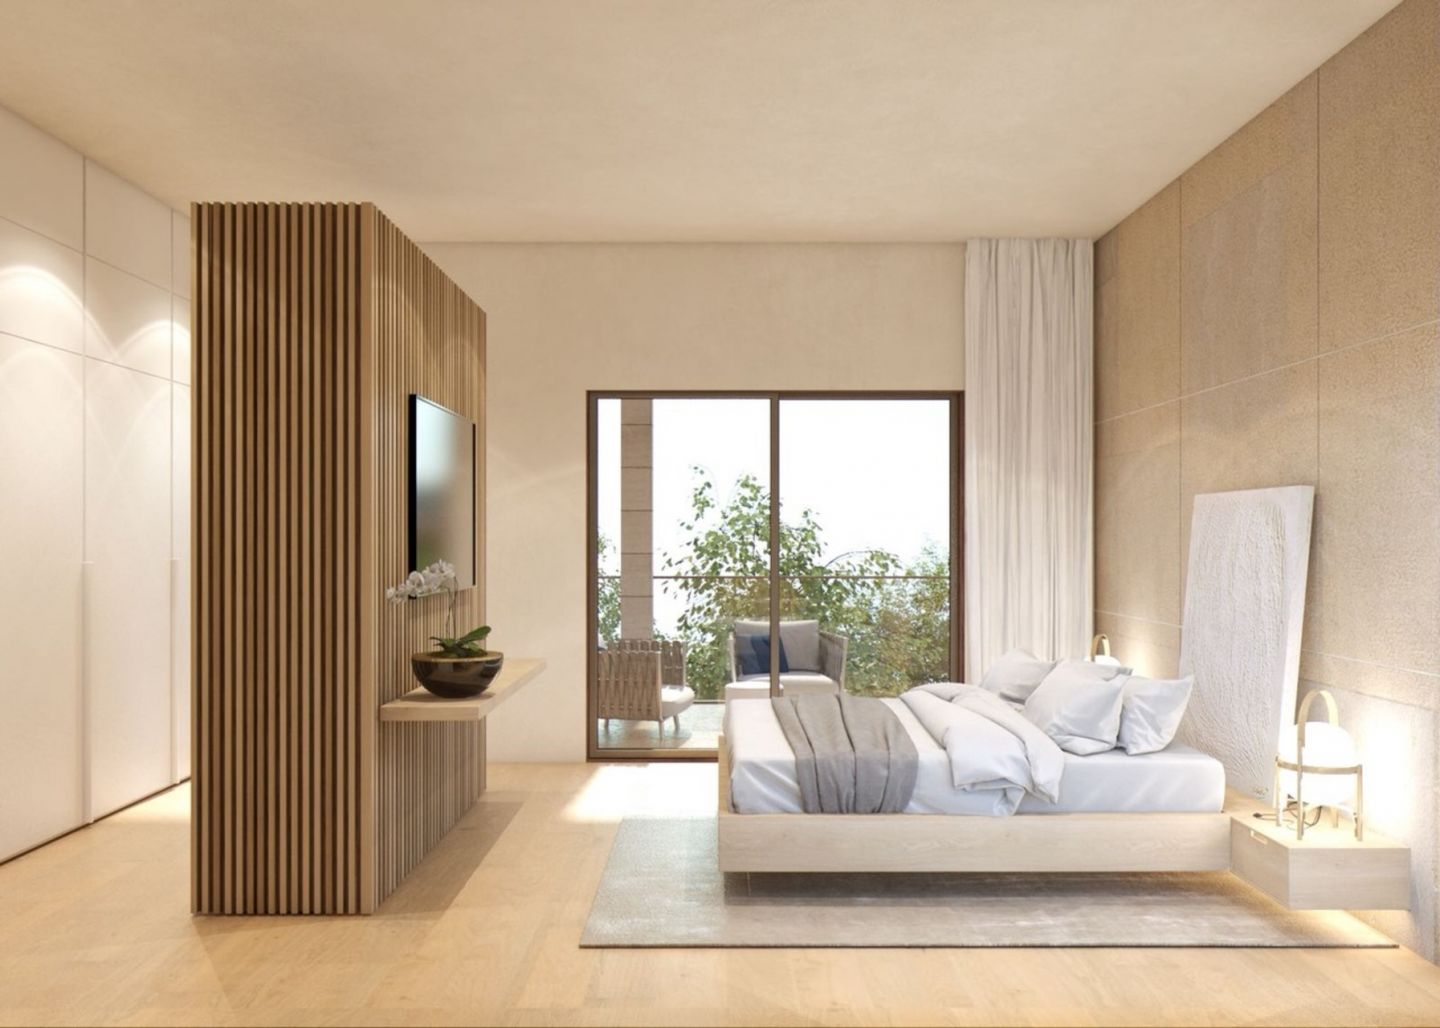 3 Bed Apartment for sale in Puerto Pollensa 2